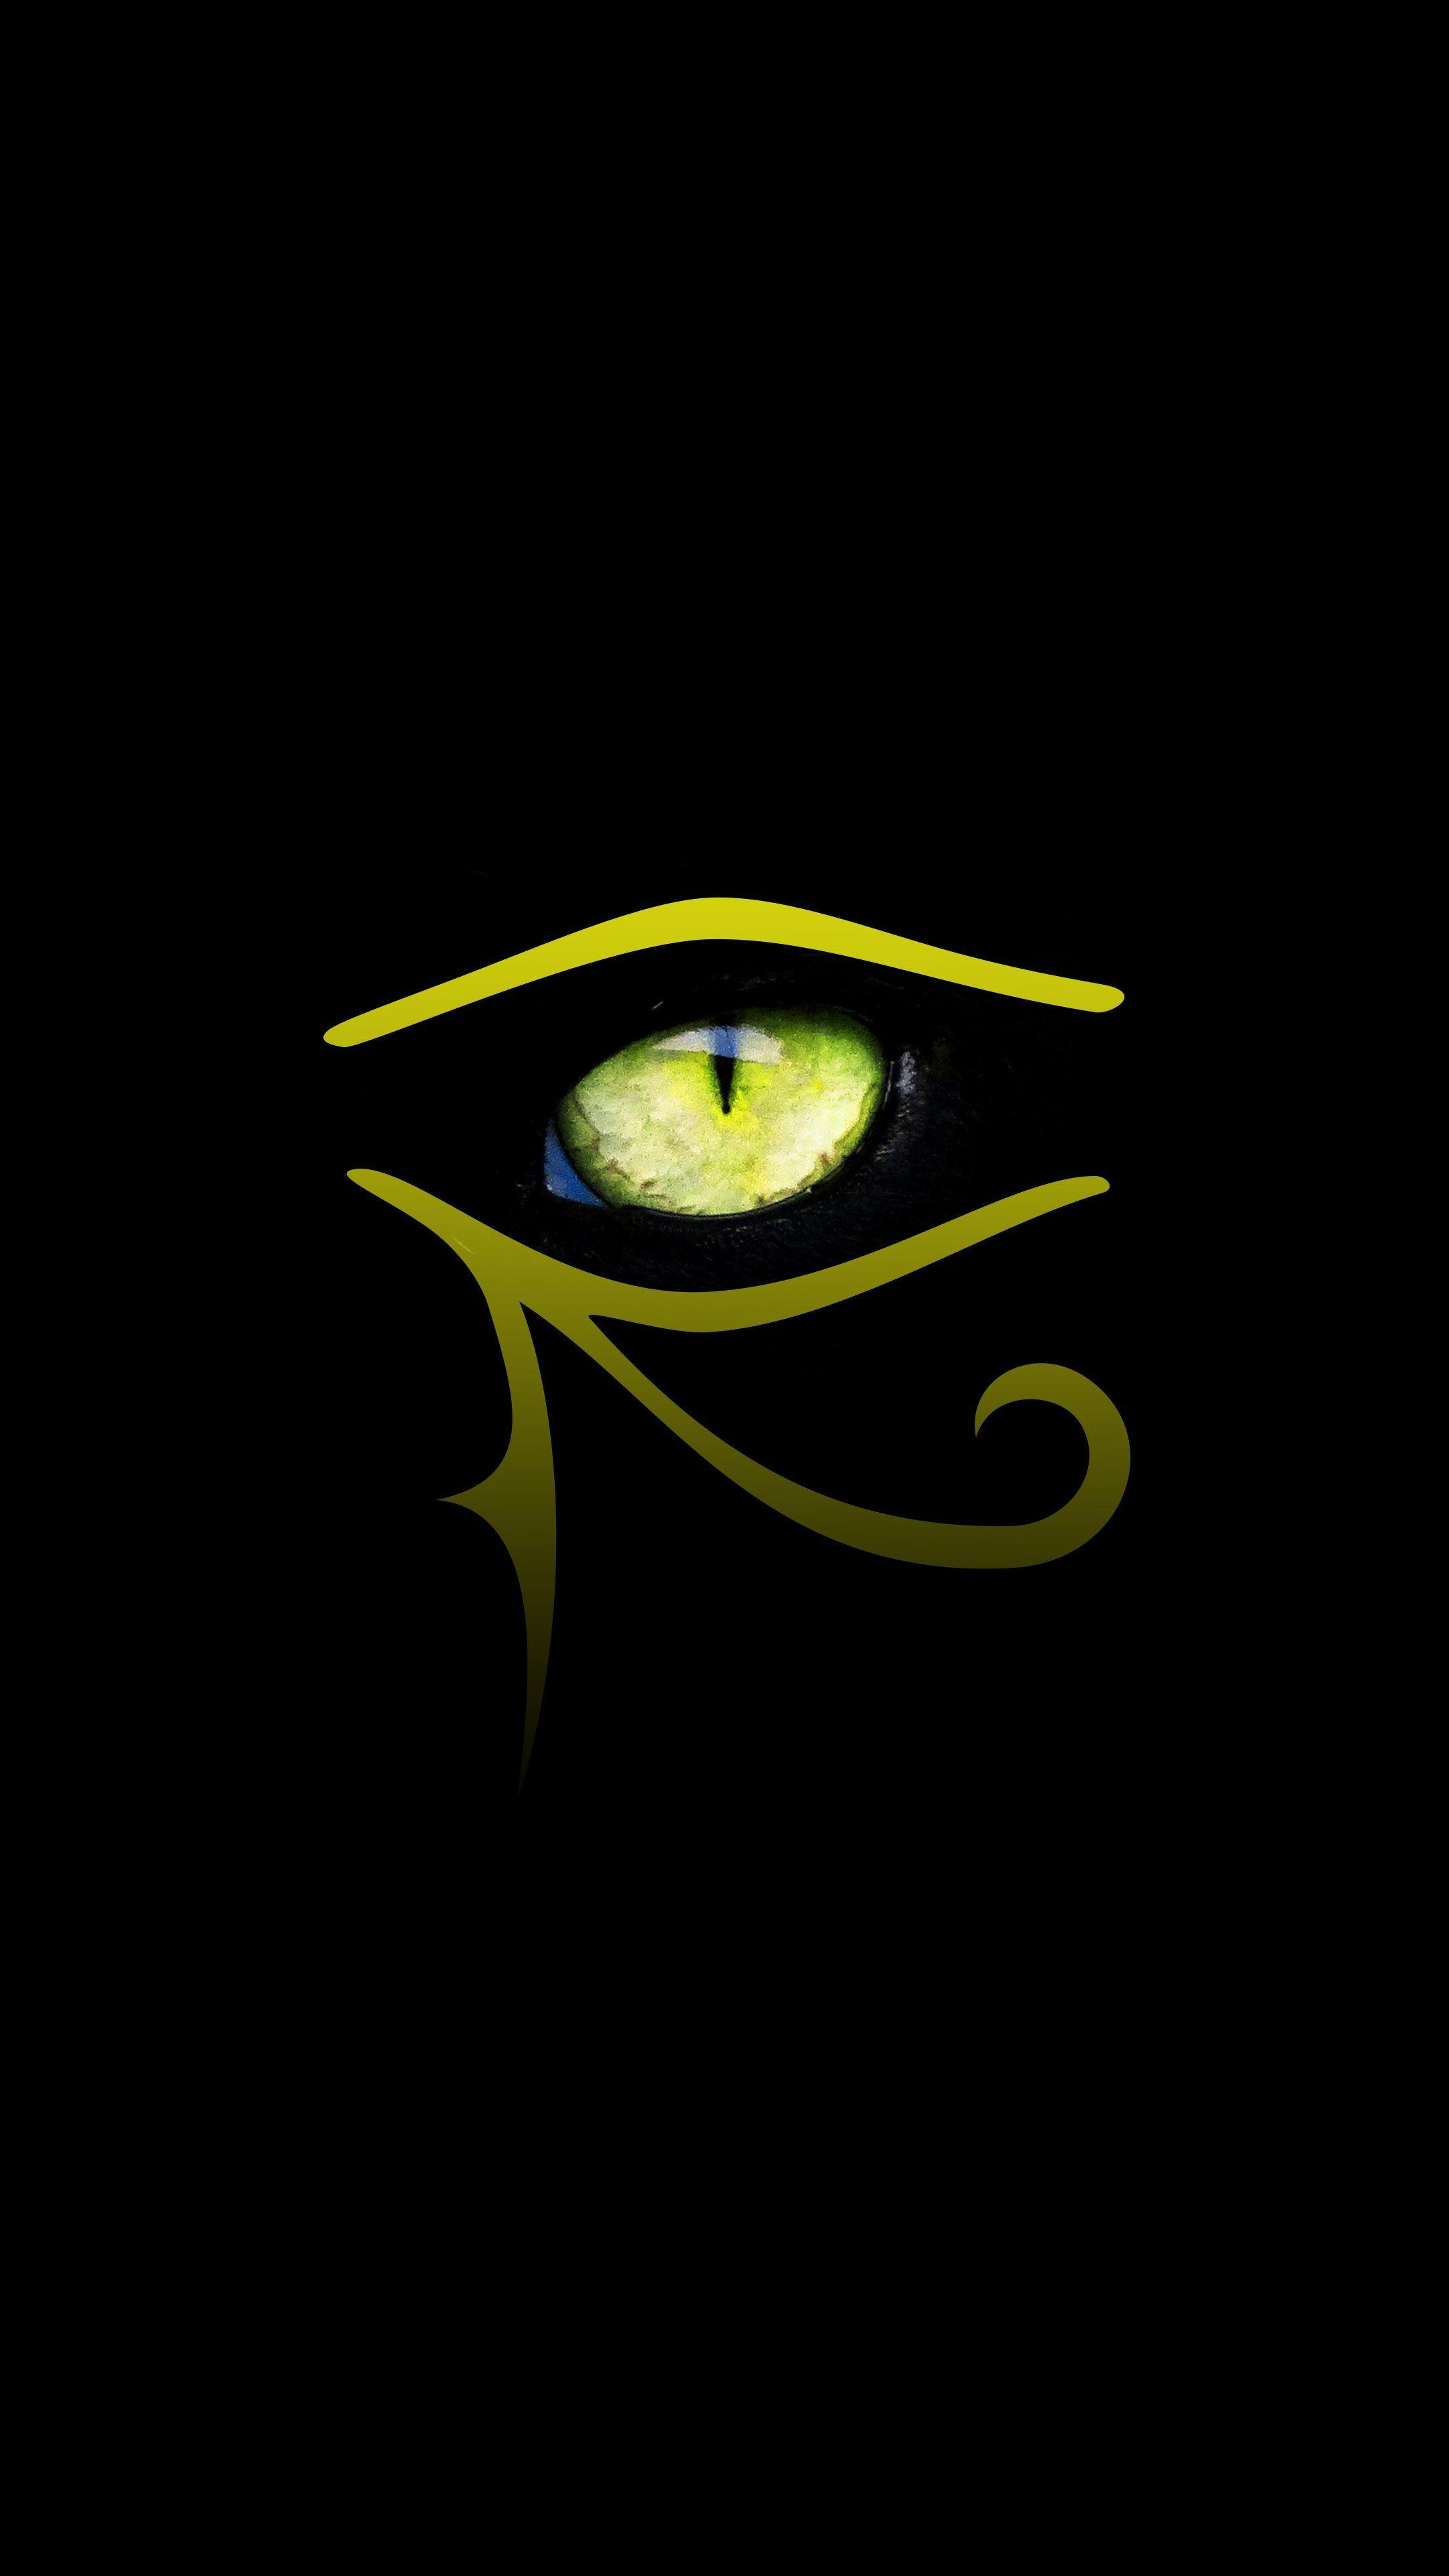 Eye Of Horus Wallpapers